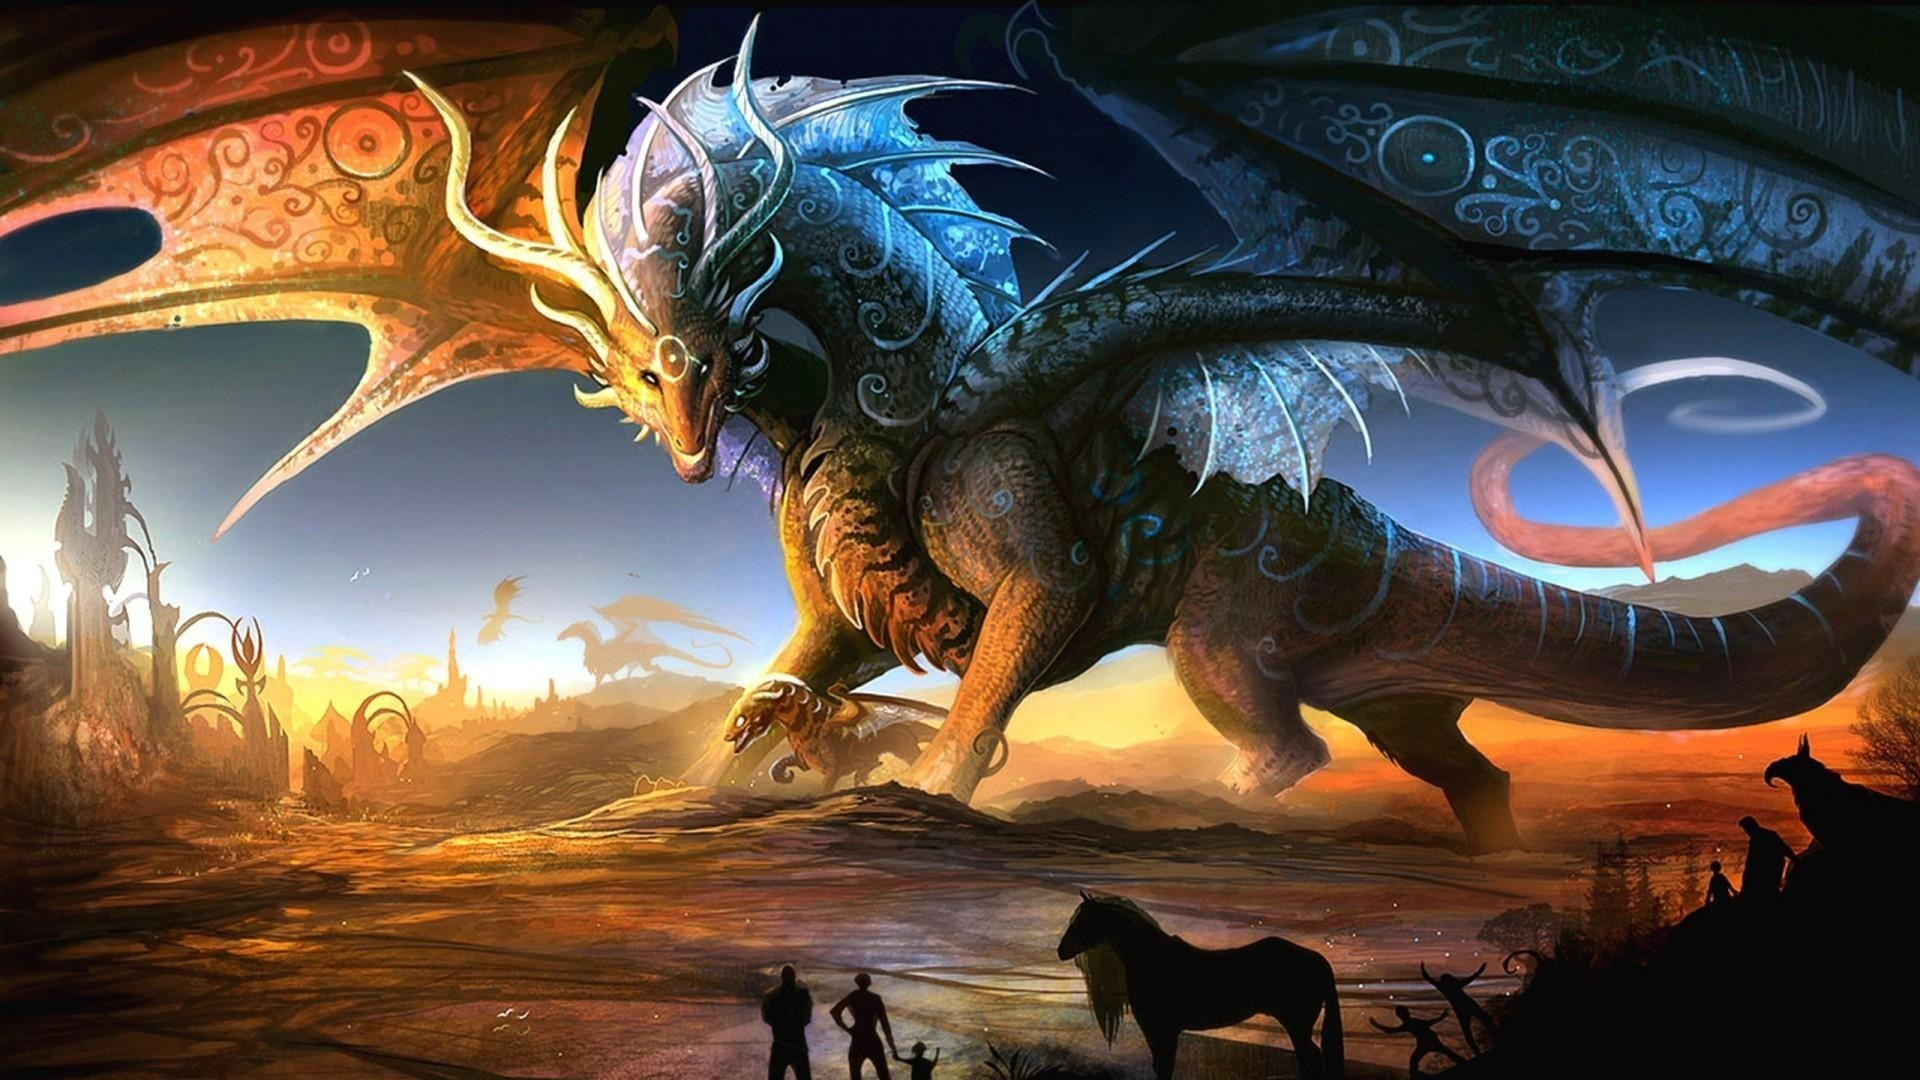 Magical Fantasy Hd Wallpapers That Will Take Your Breathe: Download Wallpaper 1920x1080 Dragons, Mother, Cub, People